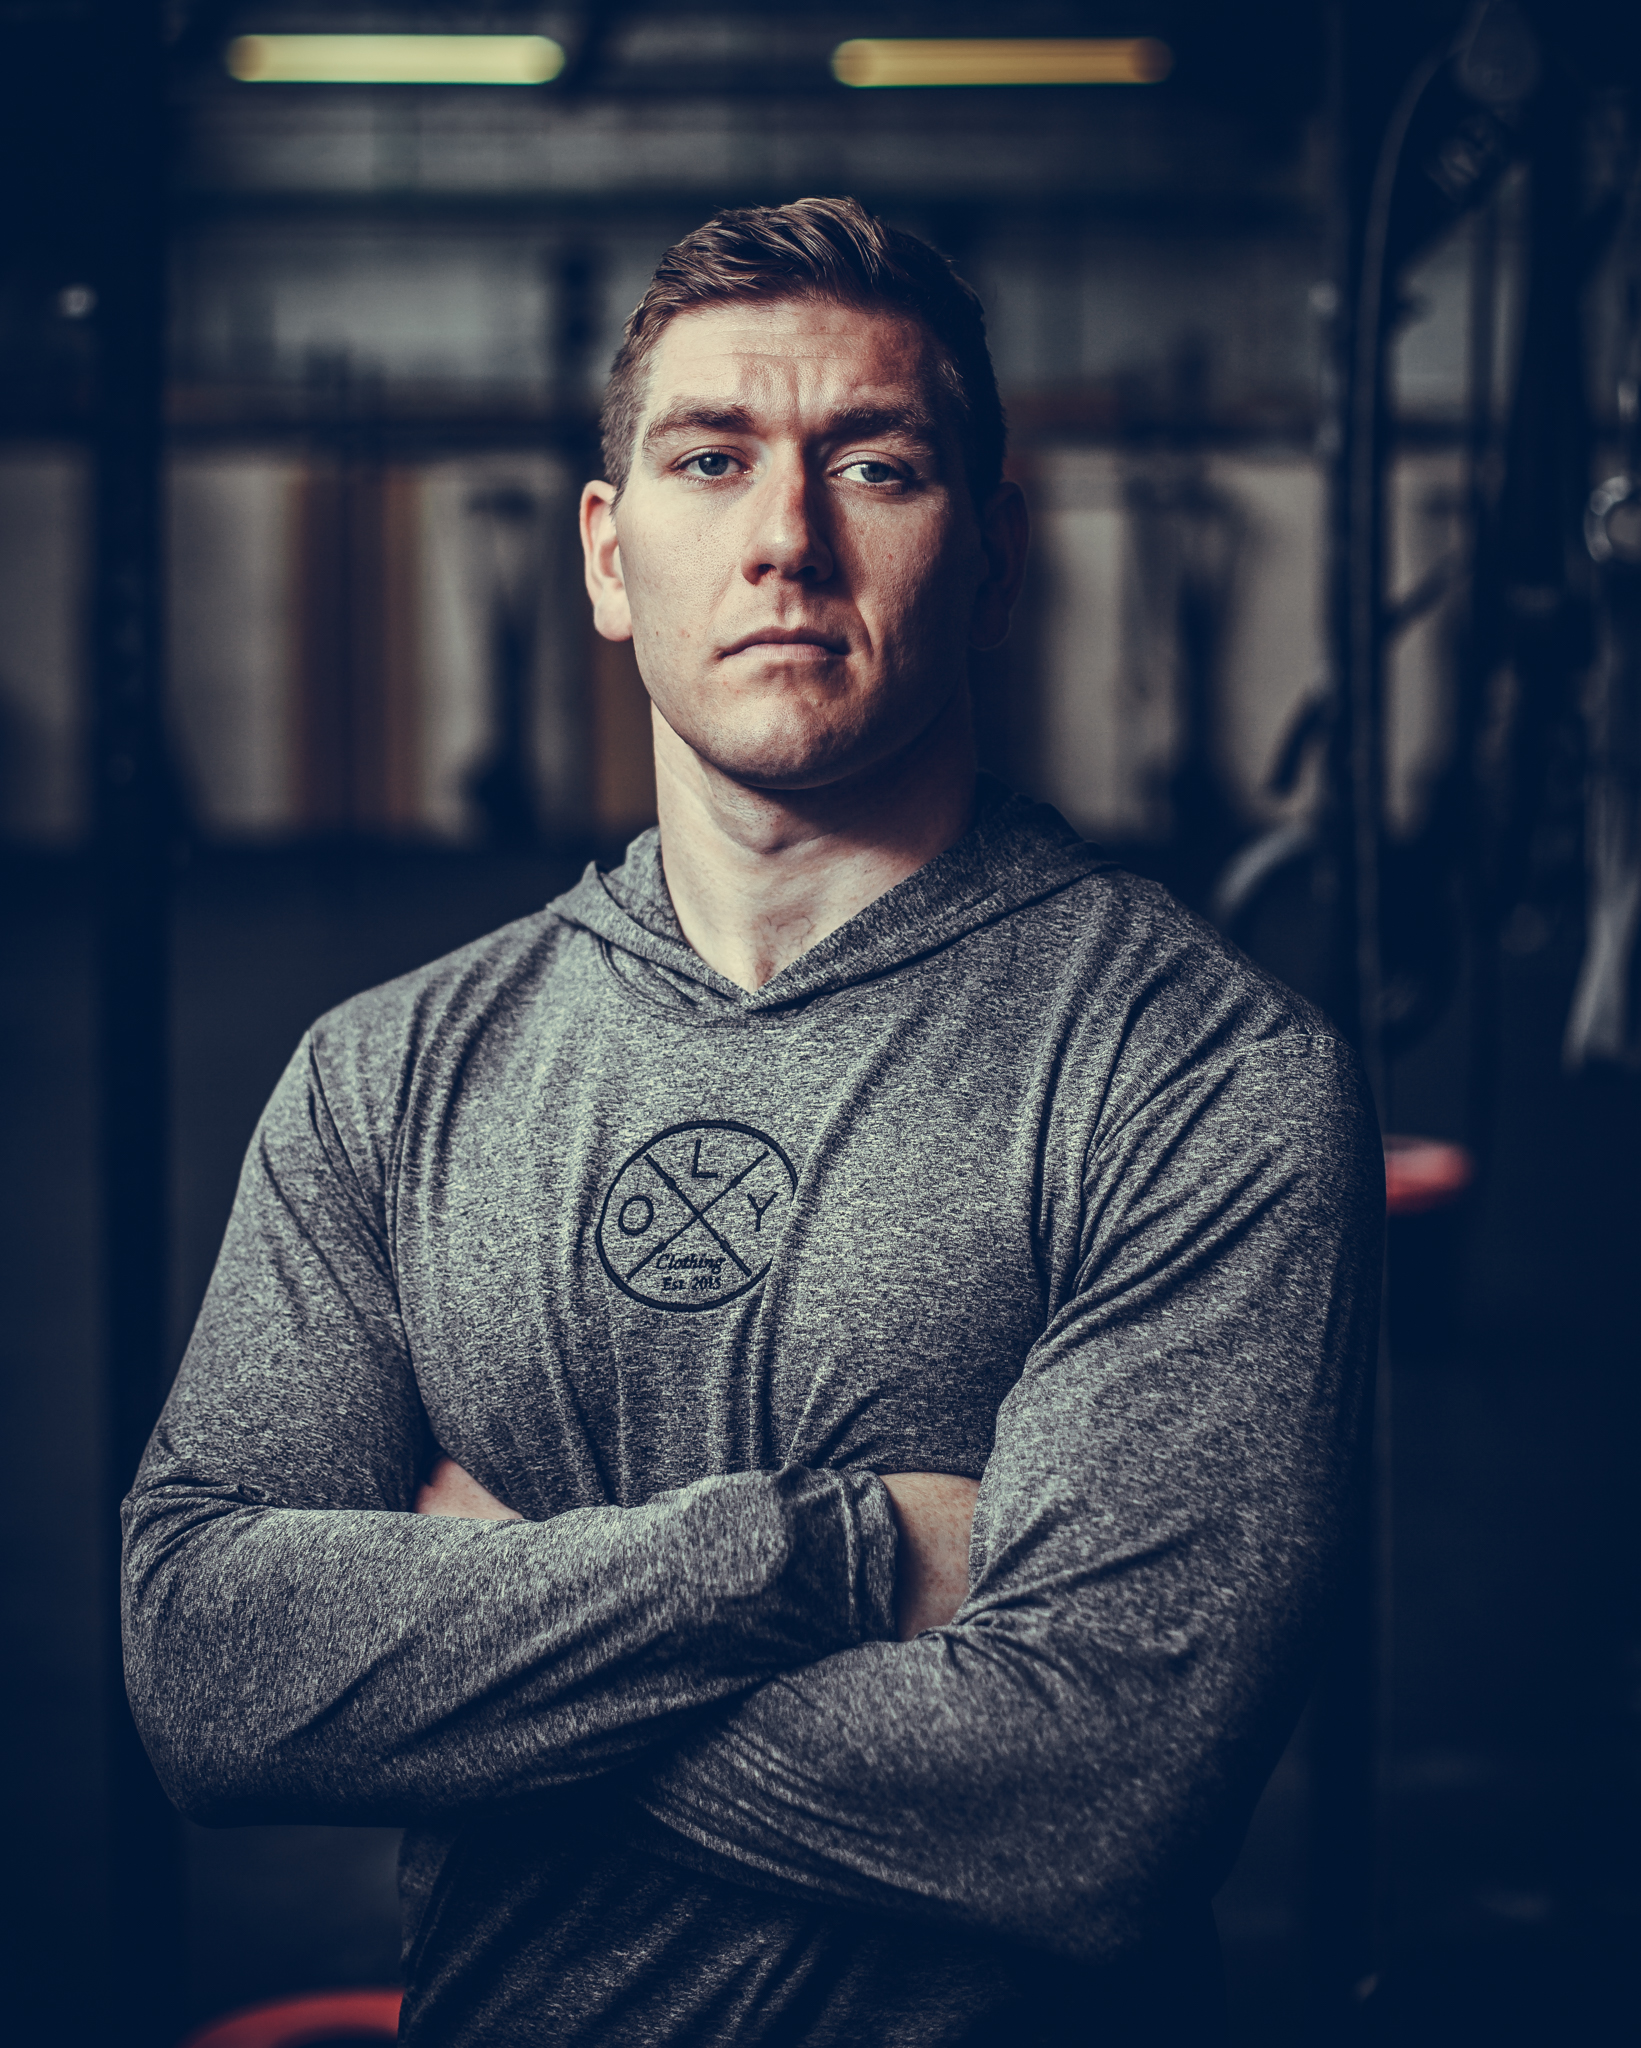 PD Savage -Competitive Fitness Athlete - 2 x CrossFit Regional Team Competitor with CrossFit 802012th place at the 2018 CrossFit European Regional as an Individual2nd Fittest male in the UK 2018CrossFit Open